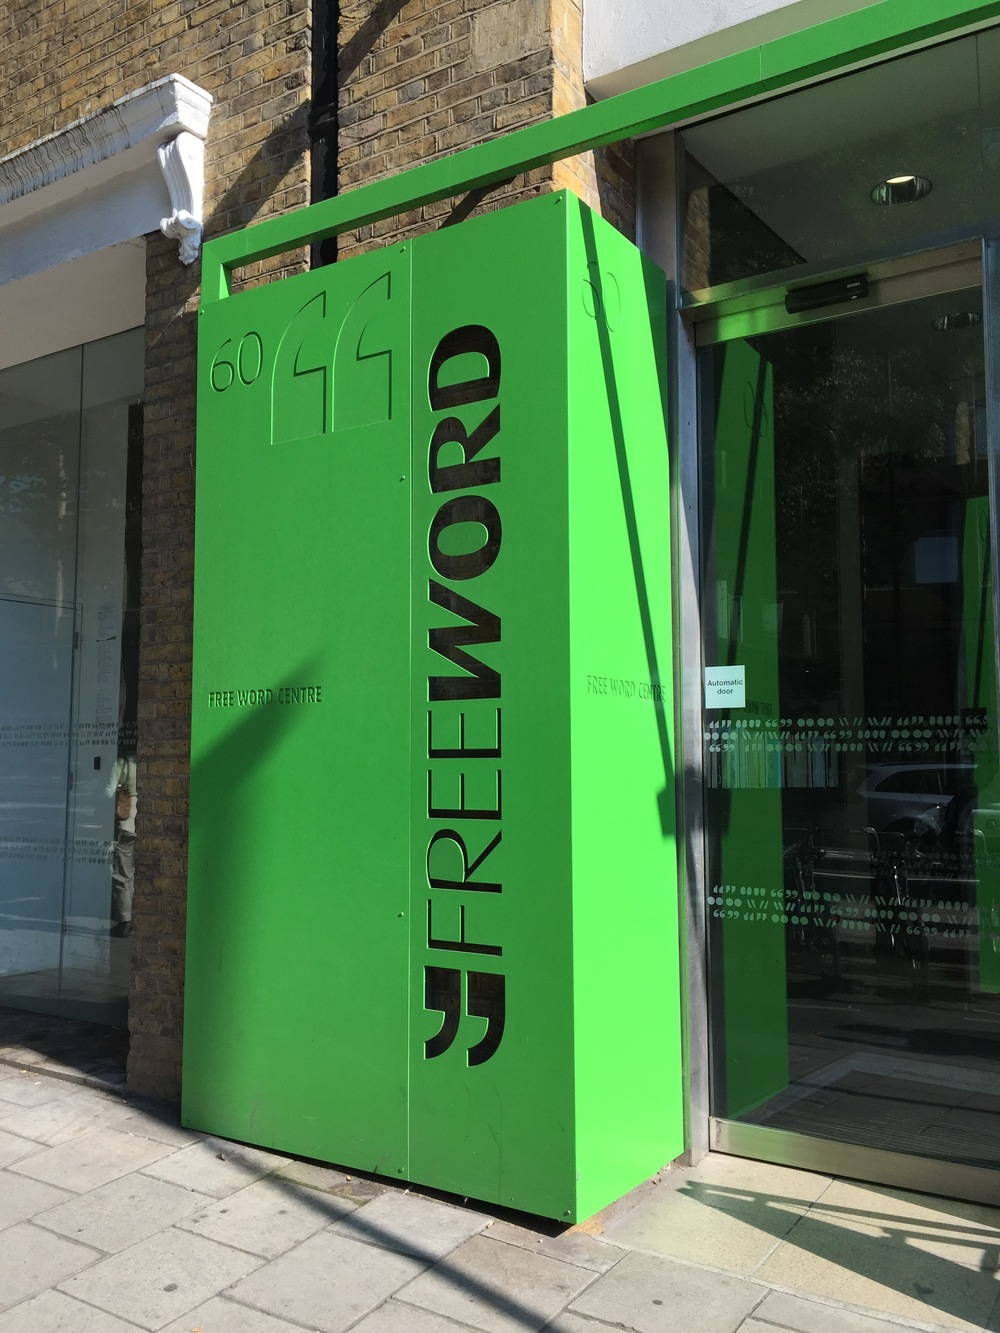 Free Word Centre in Farringdon